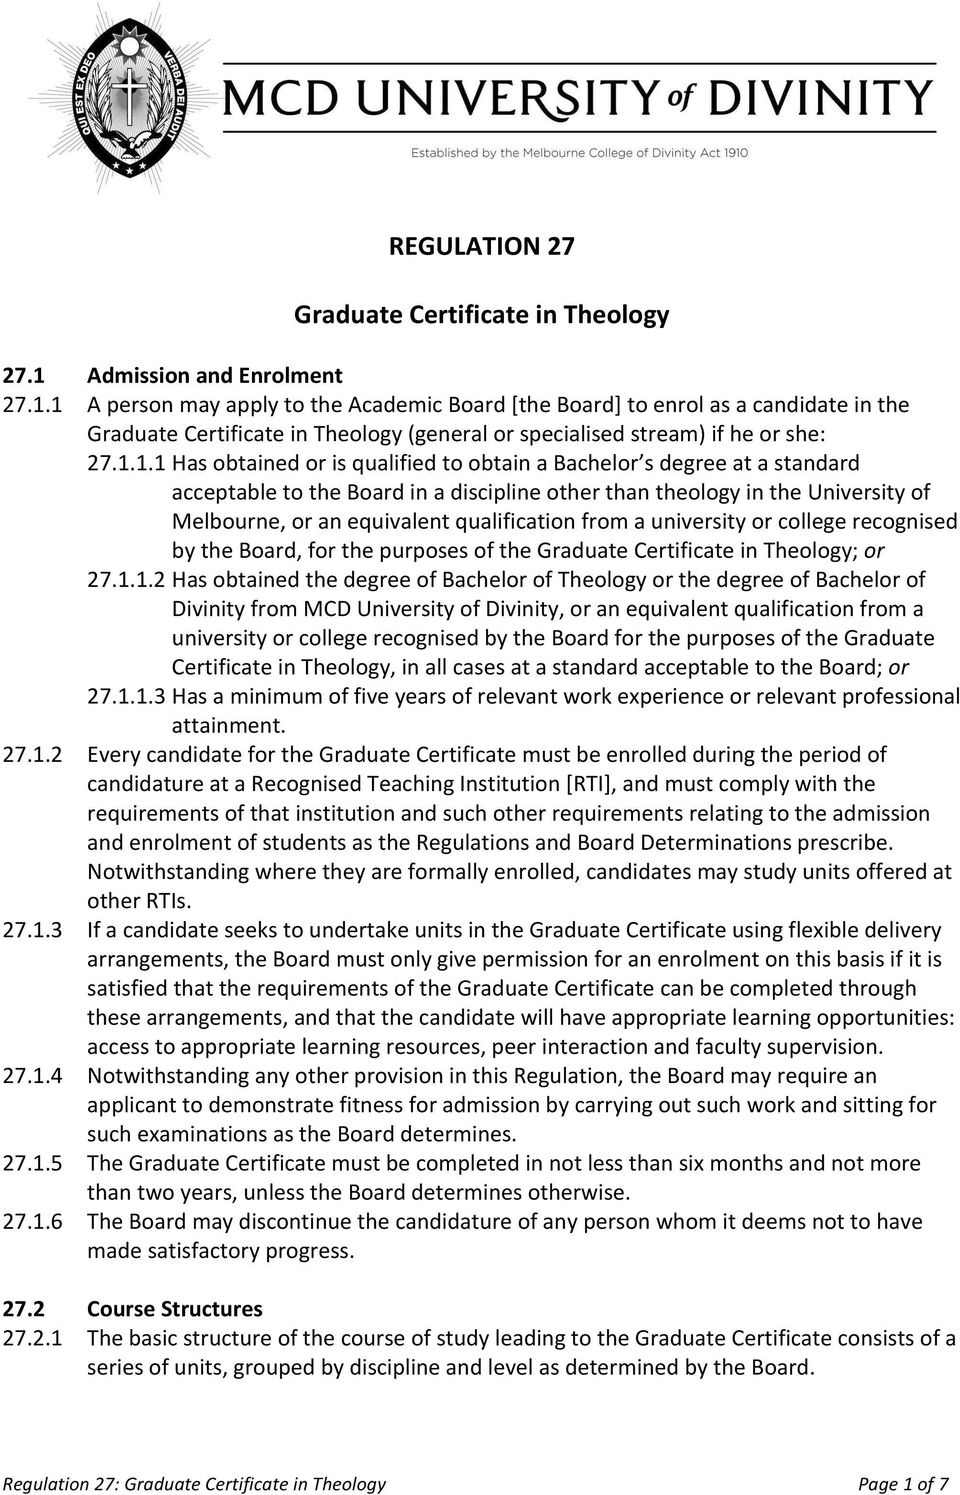 1 A person may apply to the Academic Board [the Board] to enrol as a candidate in the Graduate Certificate in Theology (general or specialised stream) if he or she: 27.1.1.1 Has obtained or is